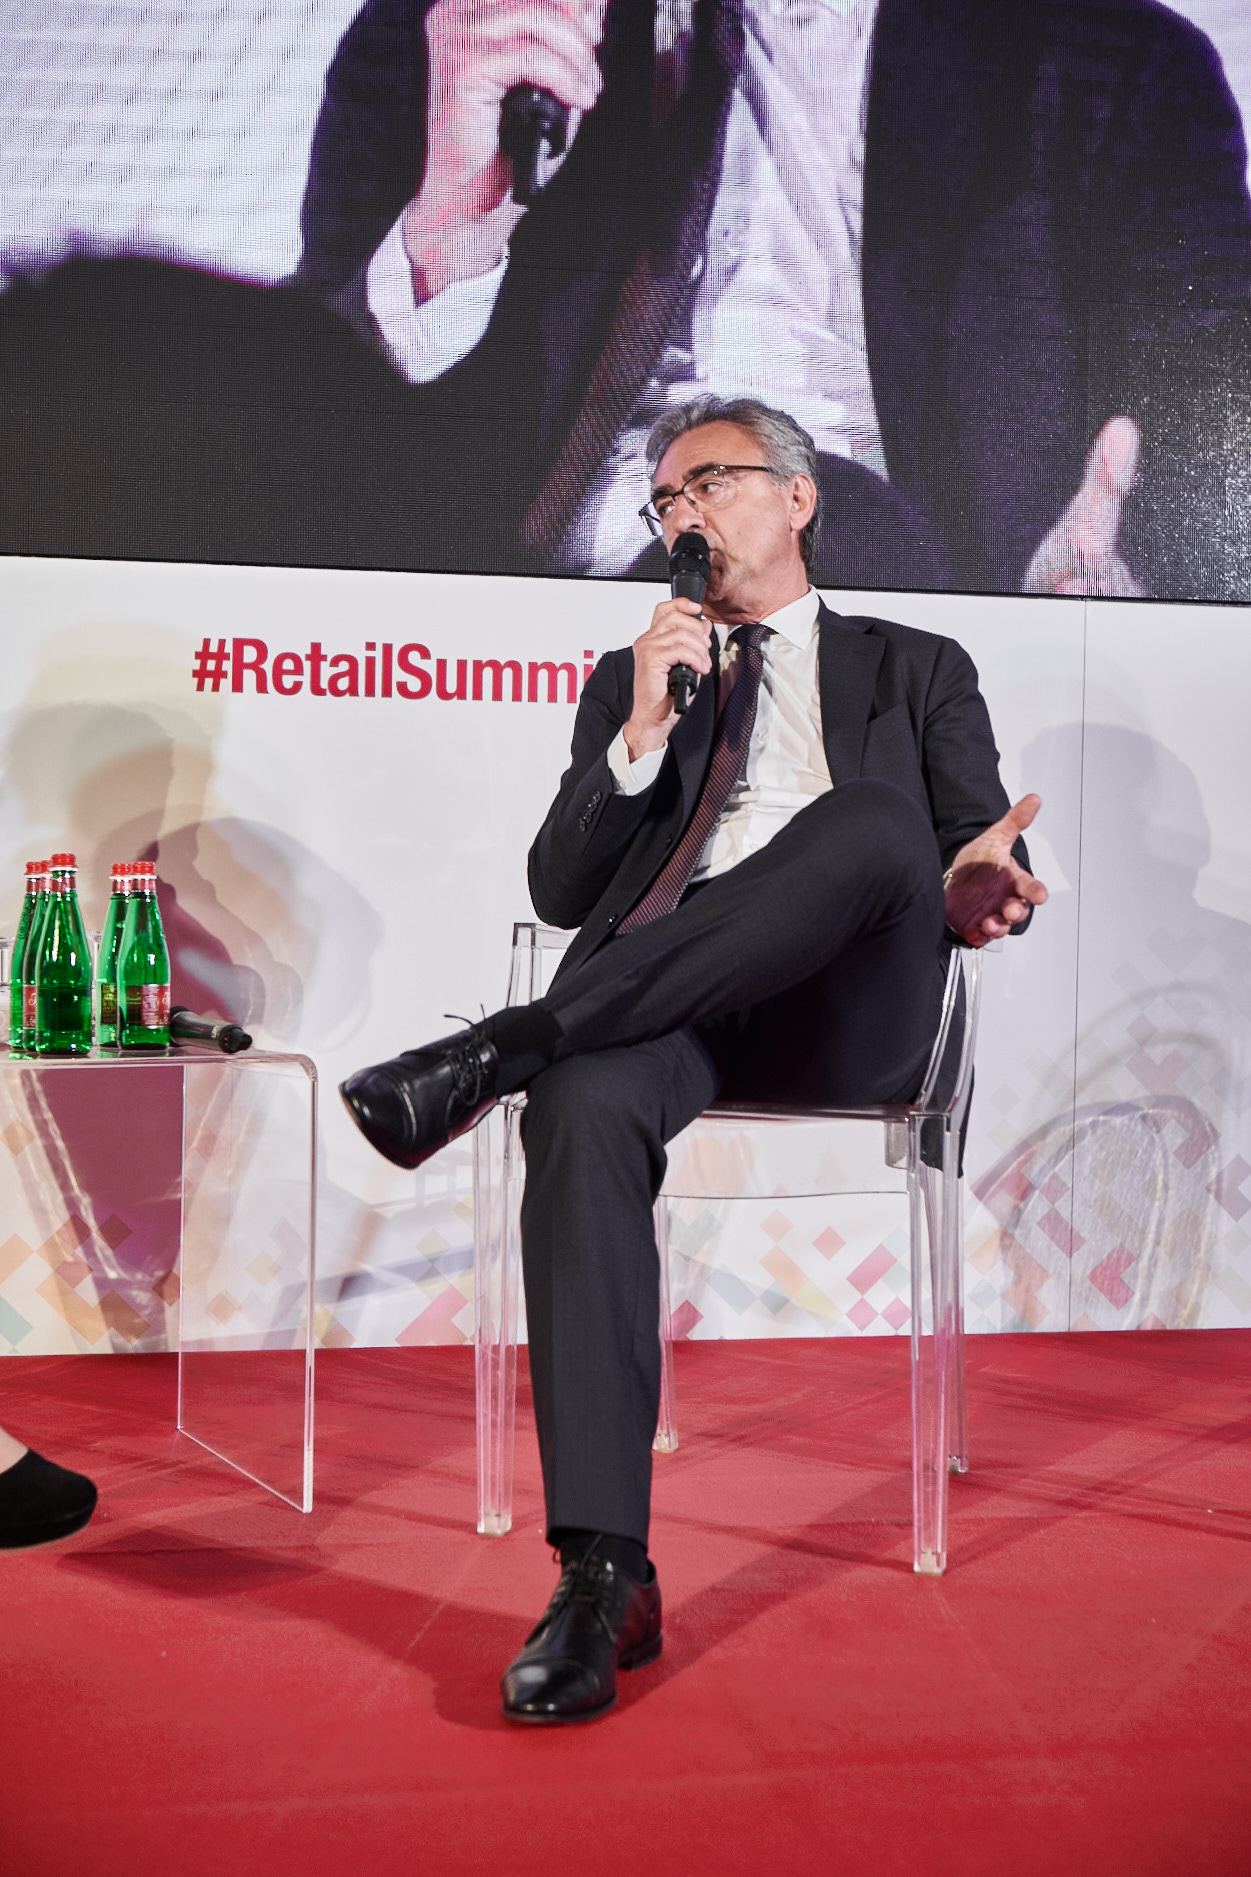 Retail Summit 2018_DSC7817